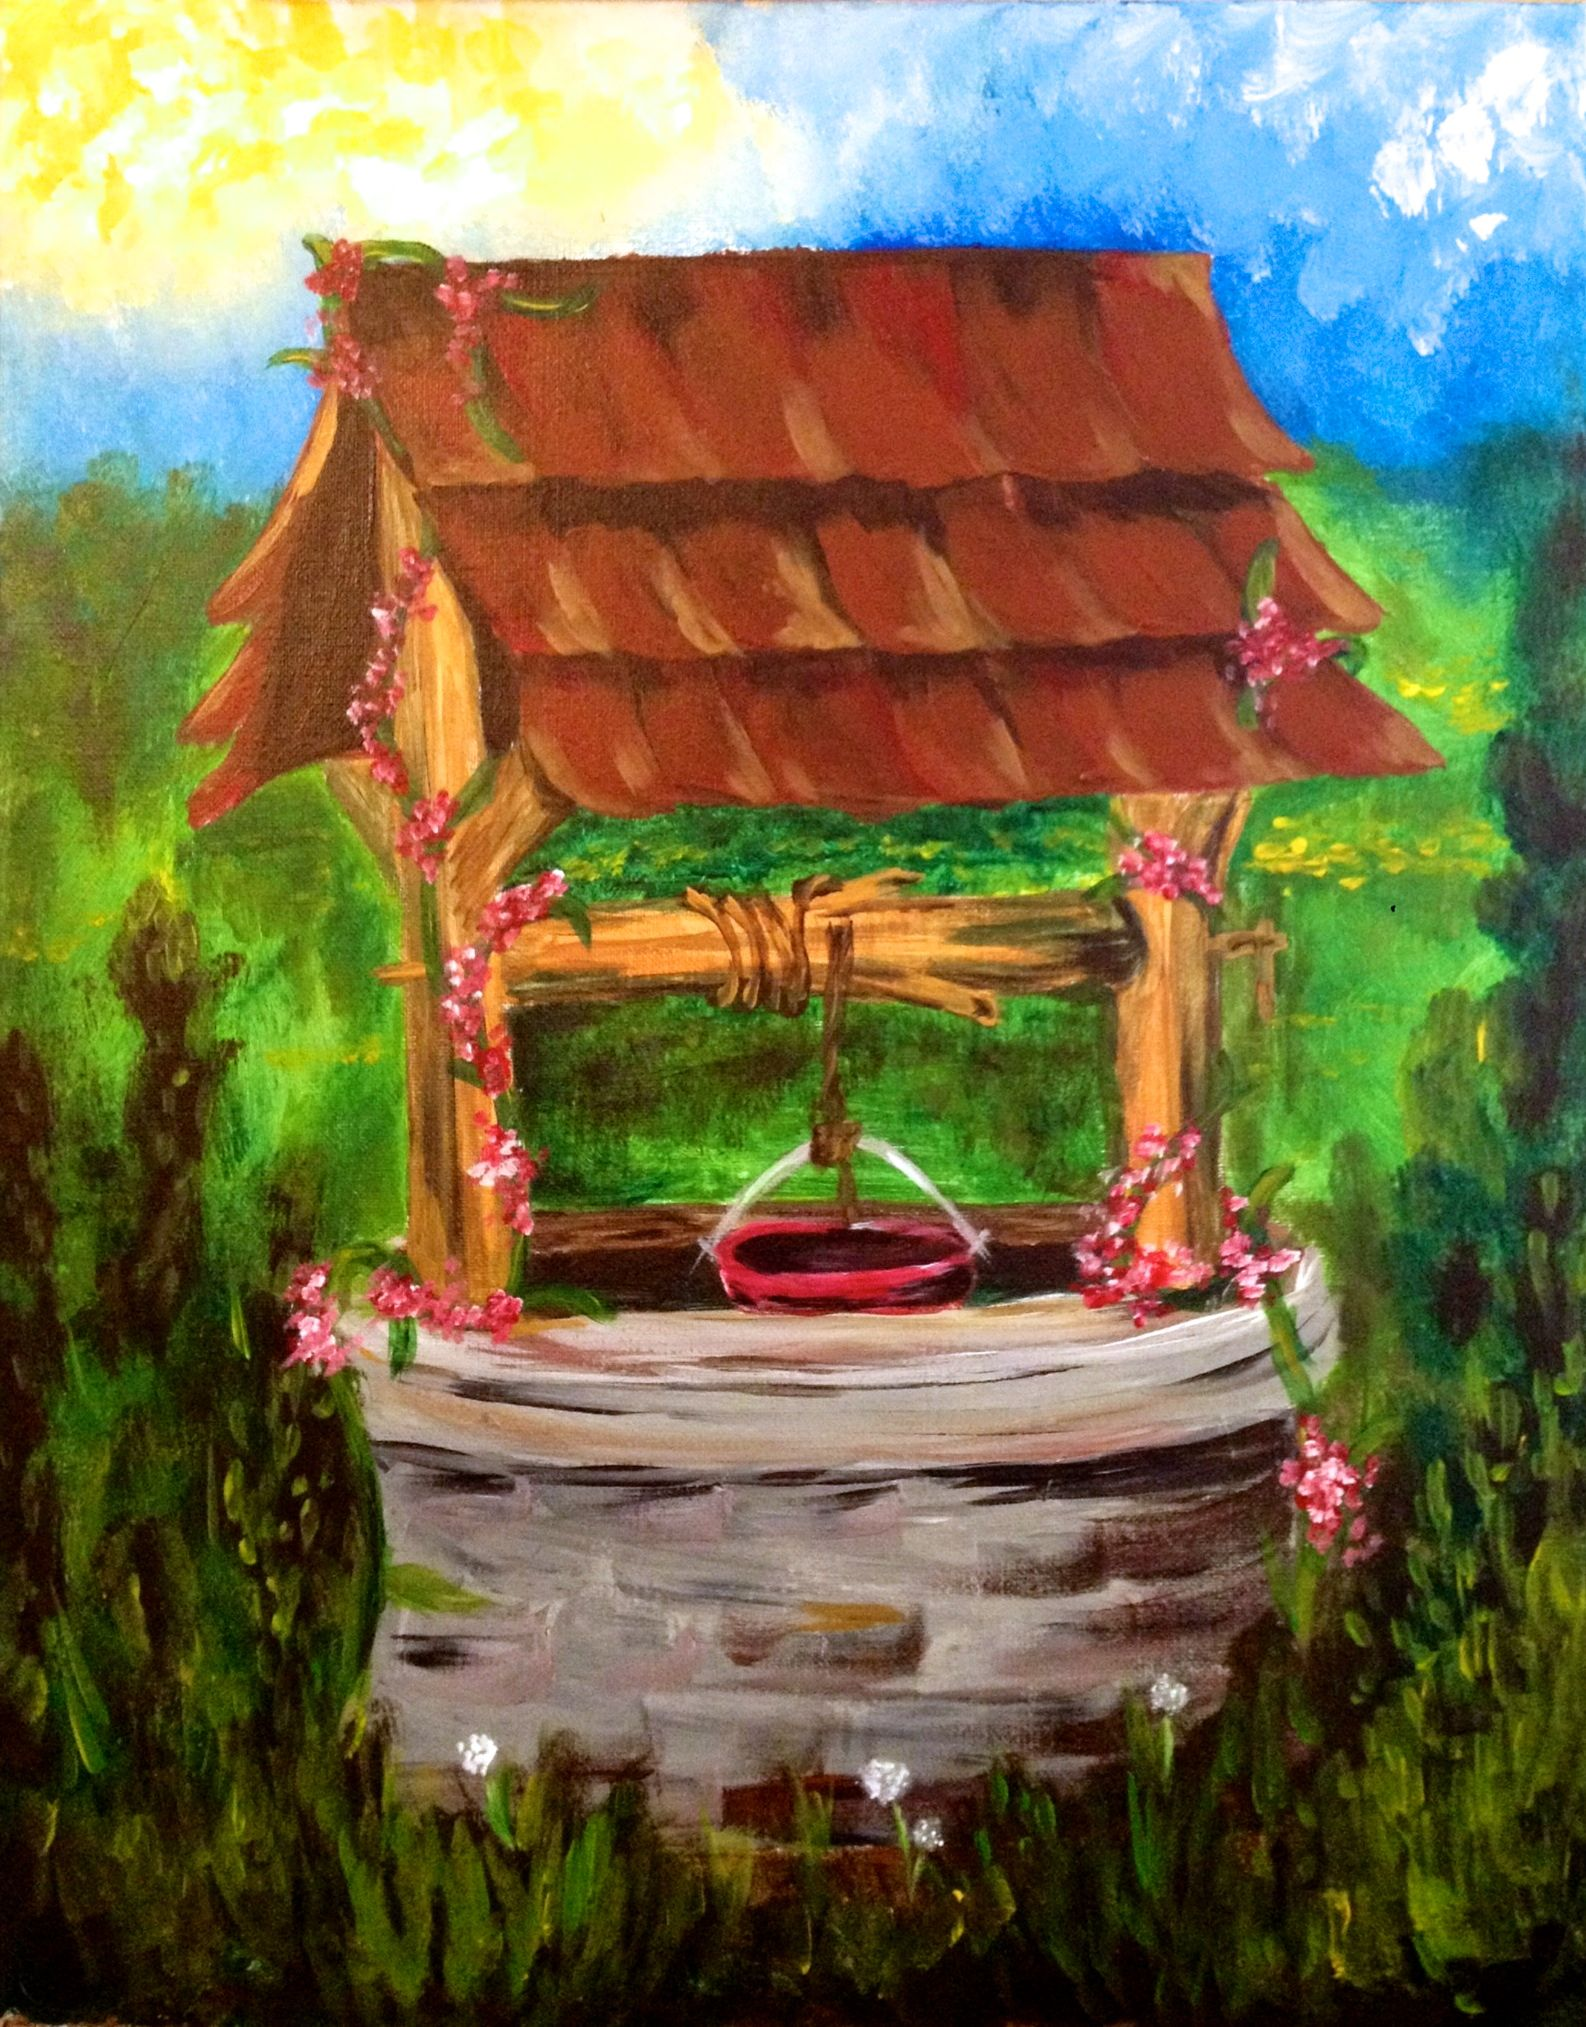 Acrylic Canvas Missy's Wishing Well Source Painting